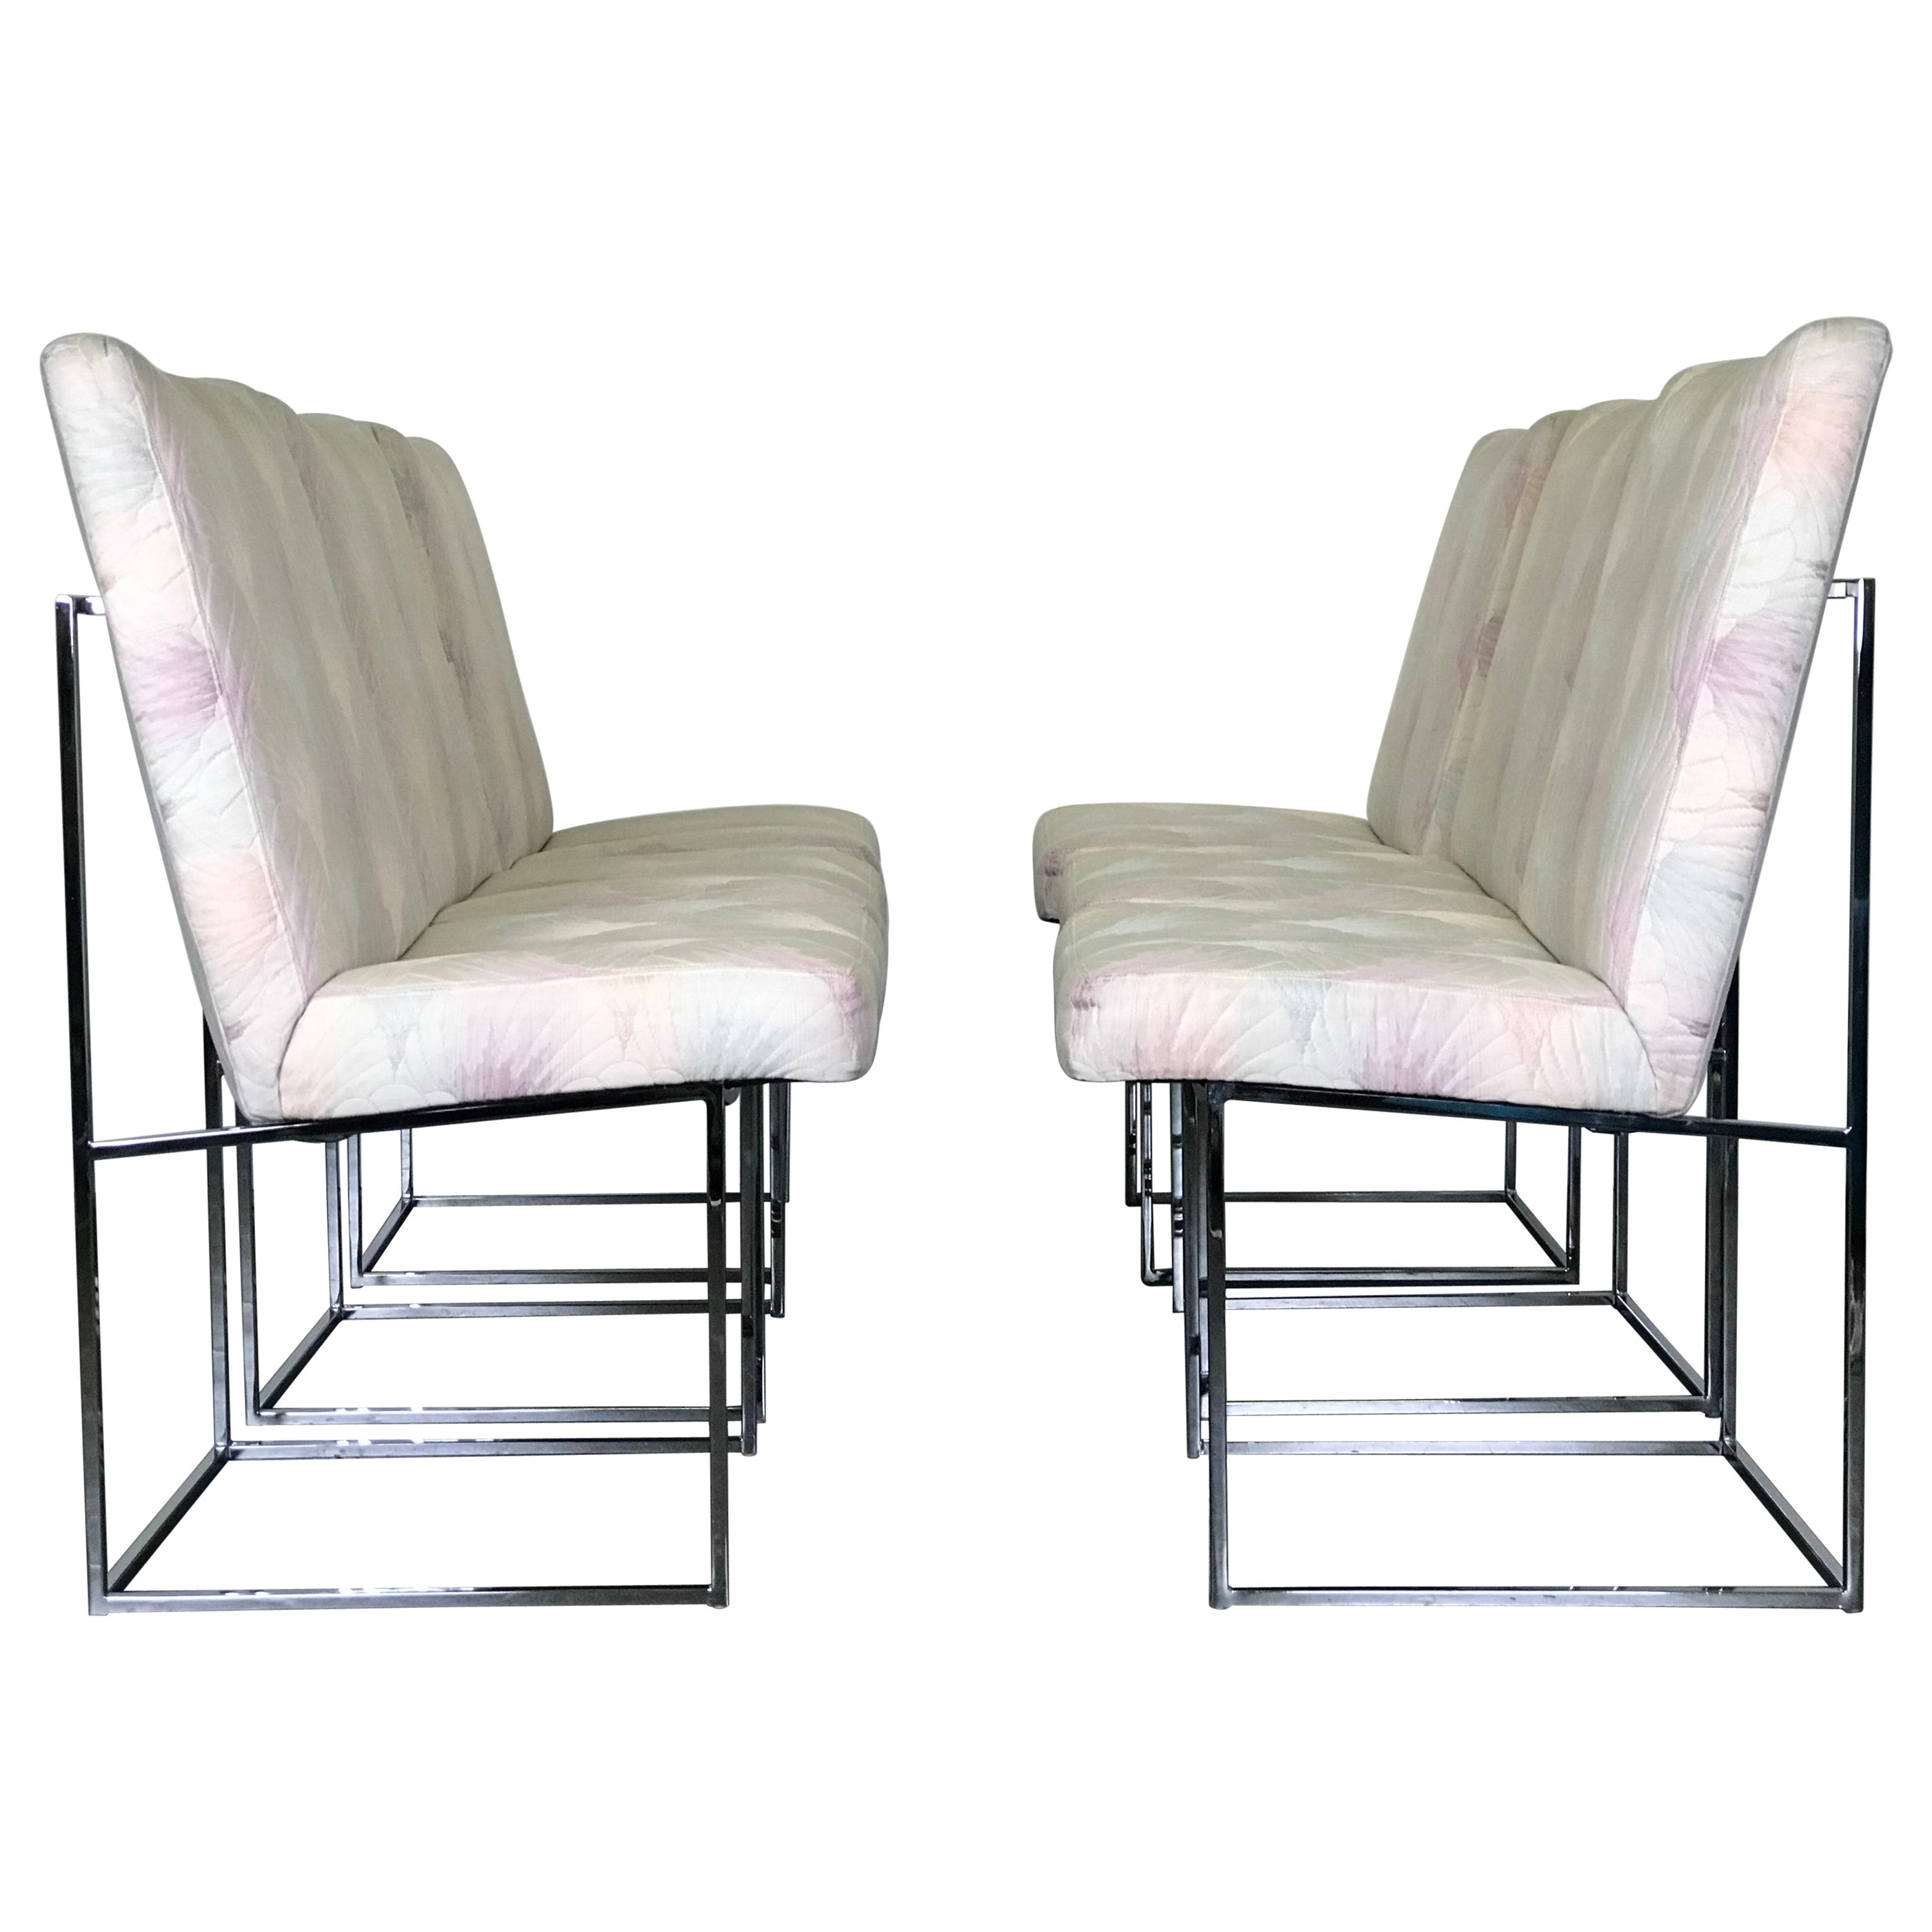 Six Mid Century Modern Milo Baughman Dining Chairs for Thayer Coggin in Chrome